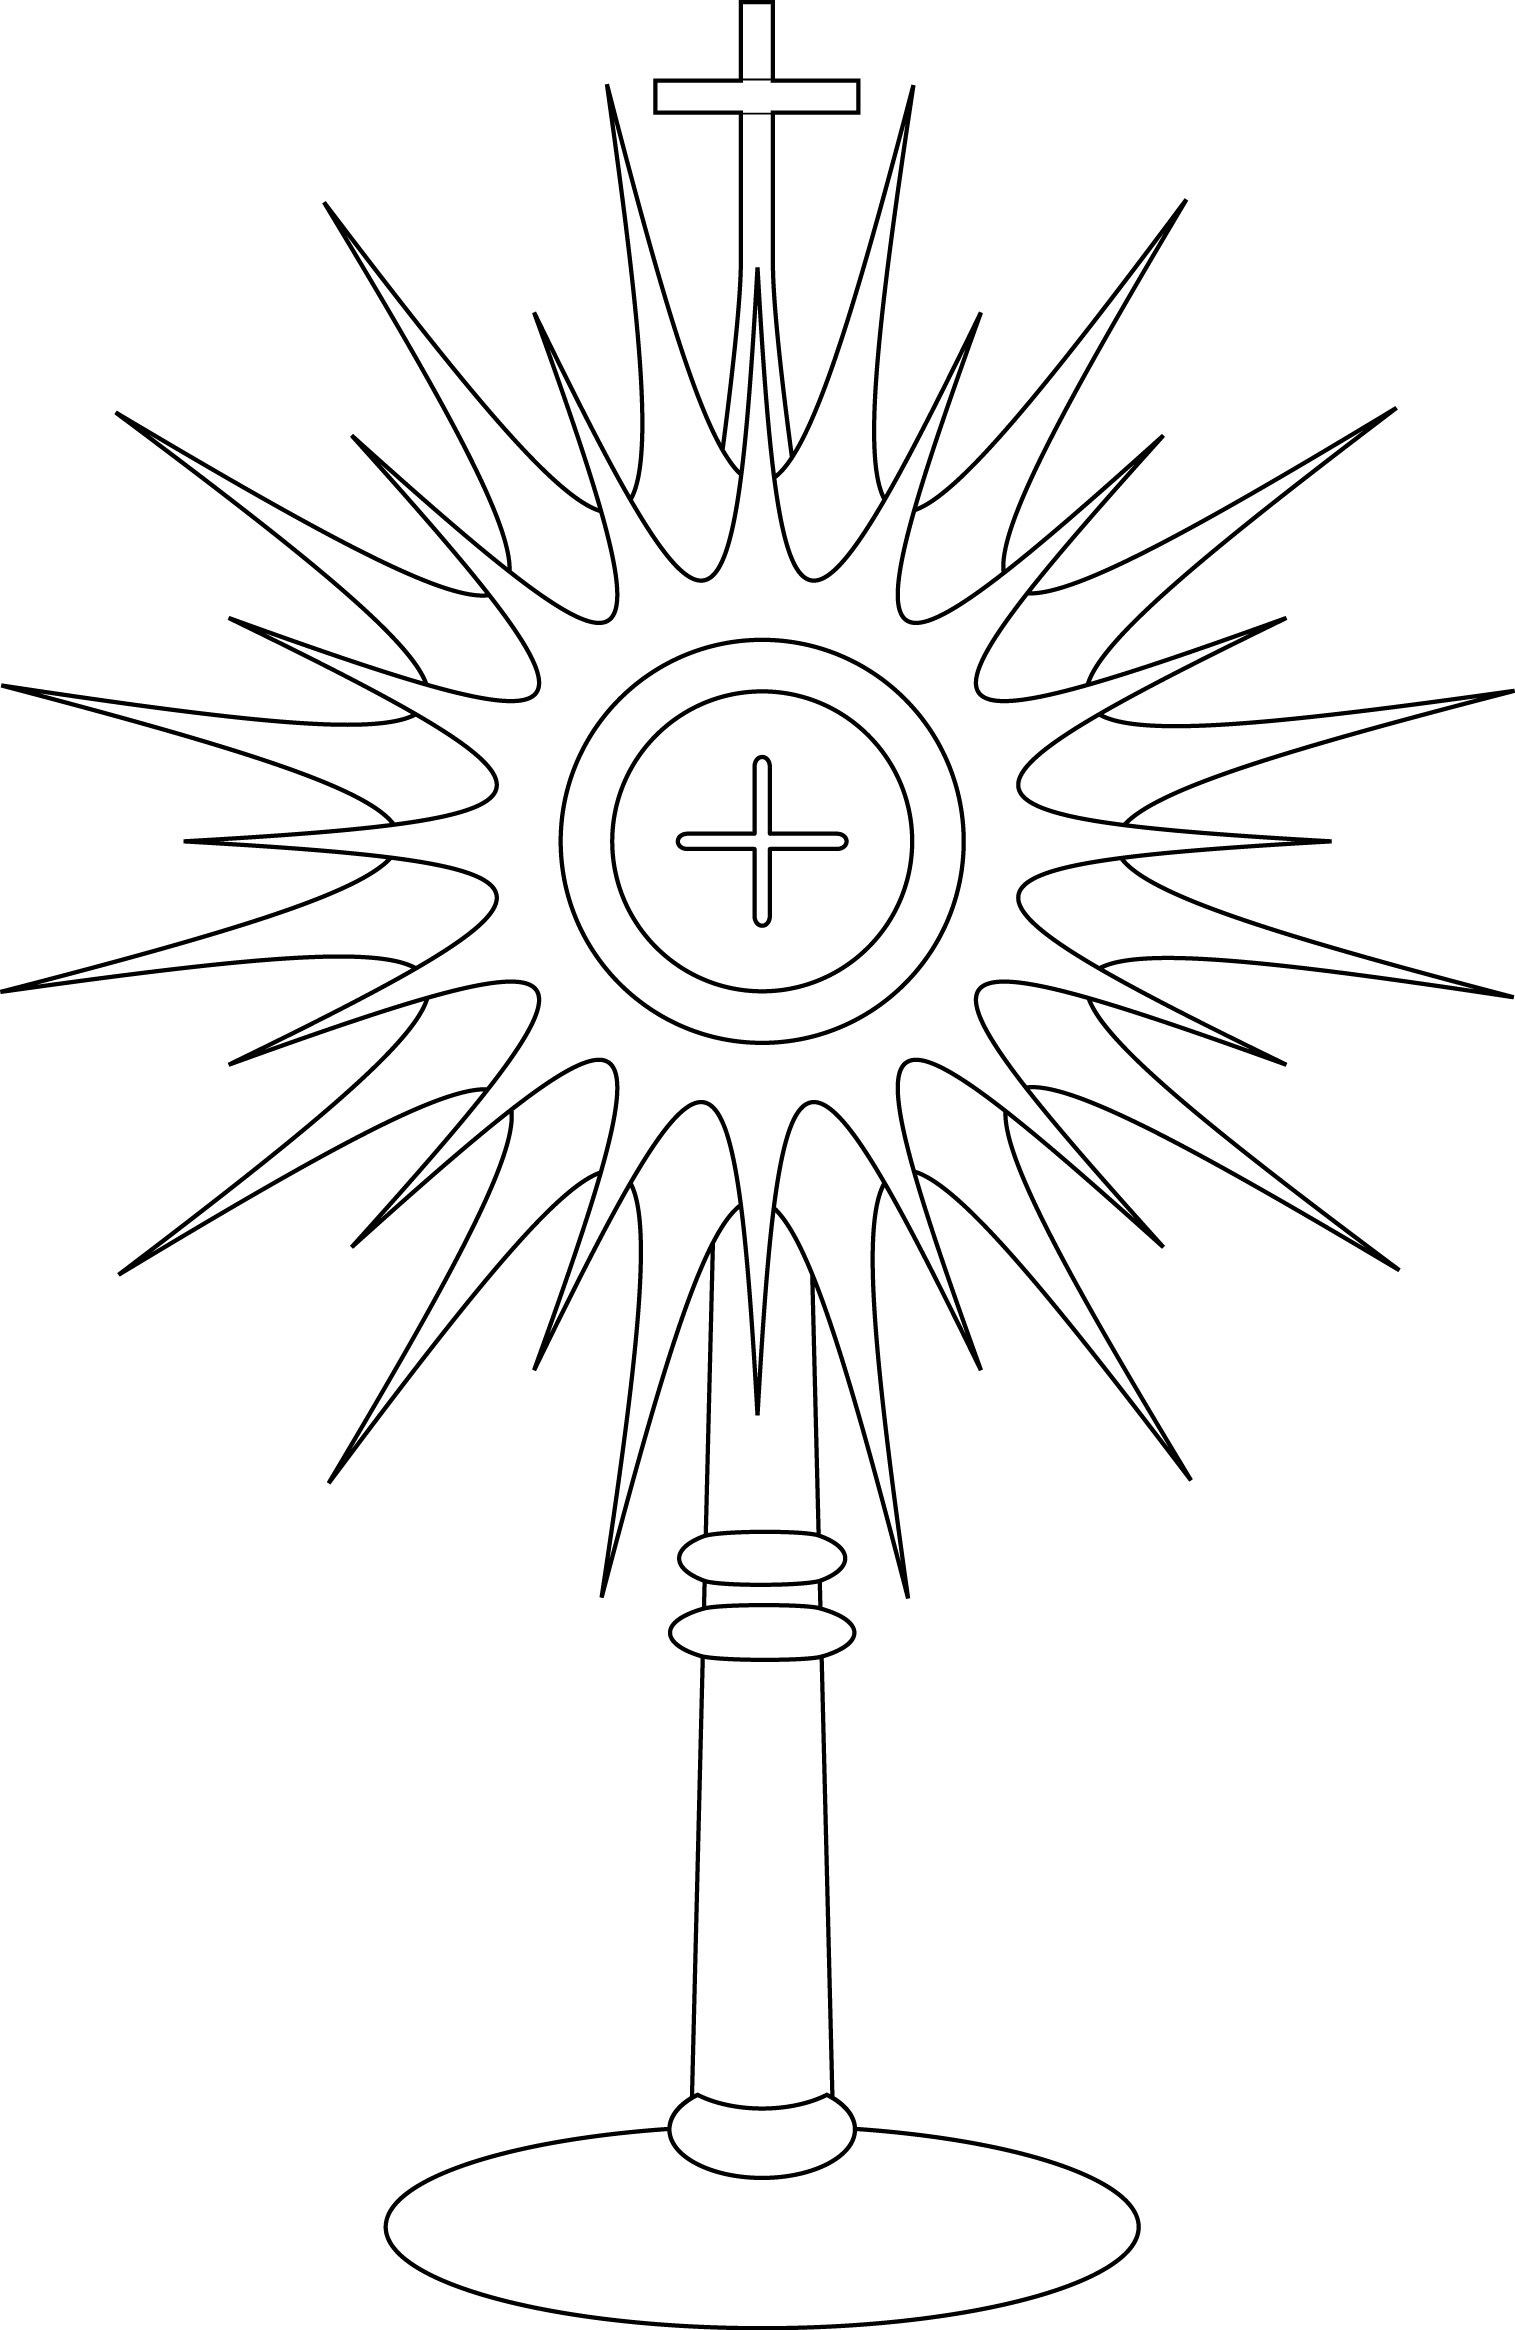 Our Lady Of Fatima Coloring Pages  Gallery 13c - Save it to your computer